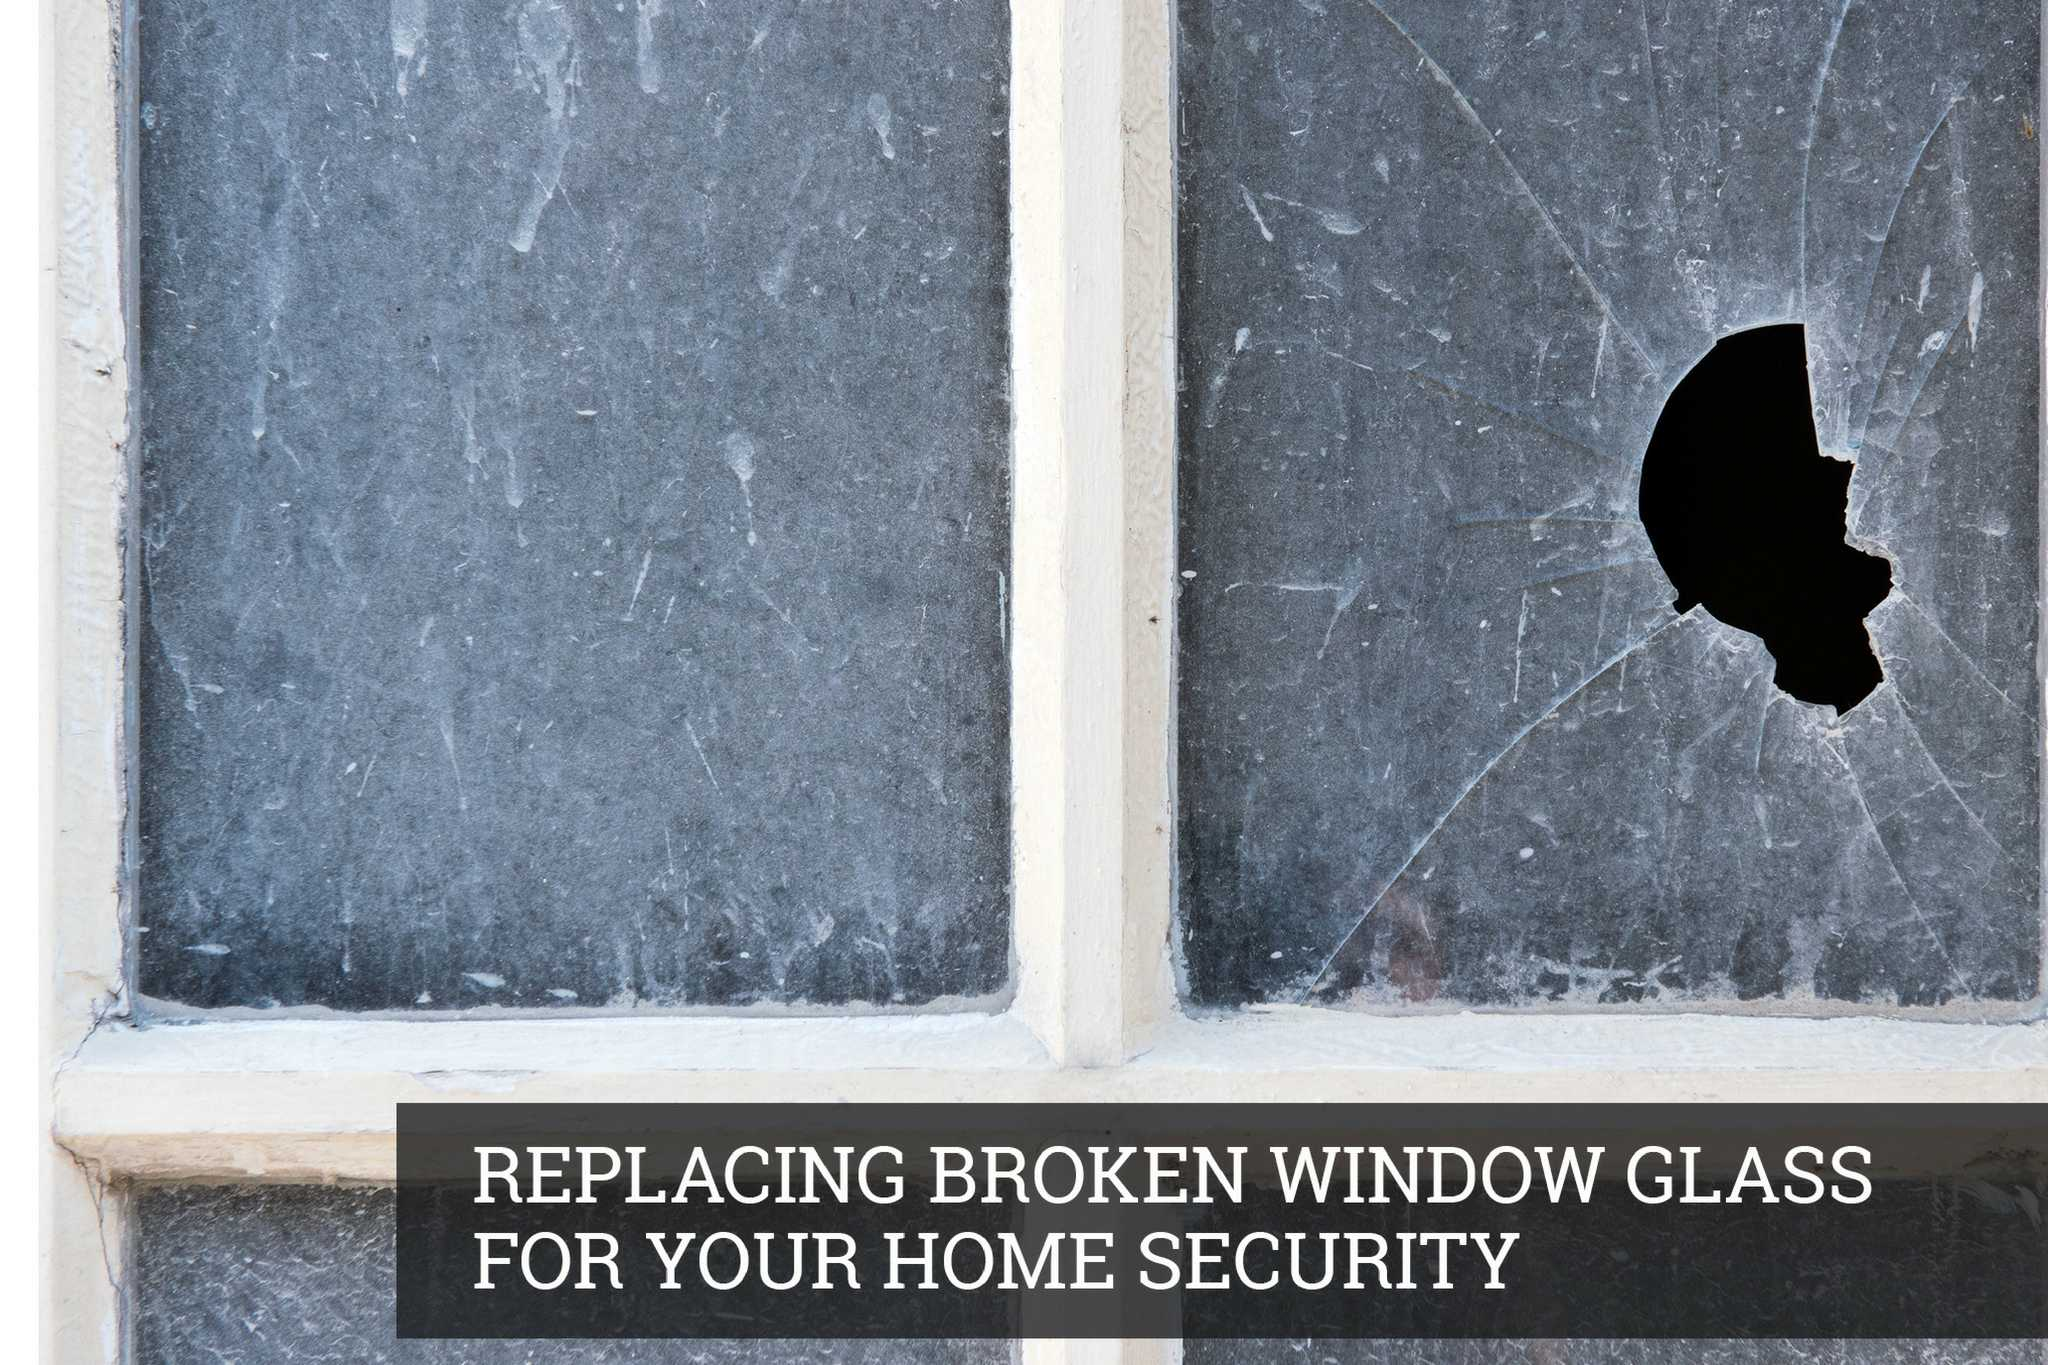 Replacing Broken Window Glass to Ensure Security